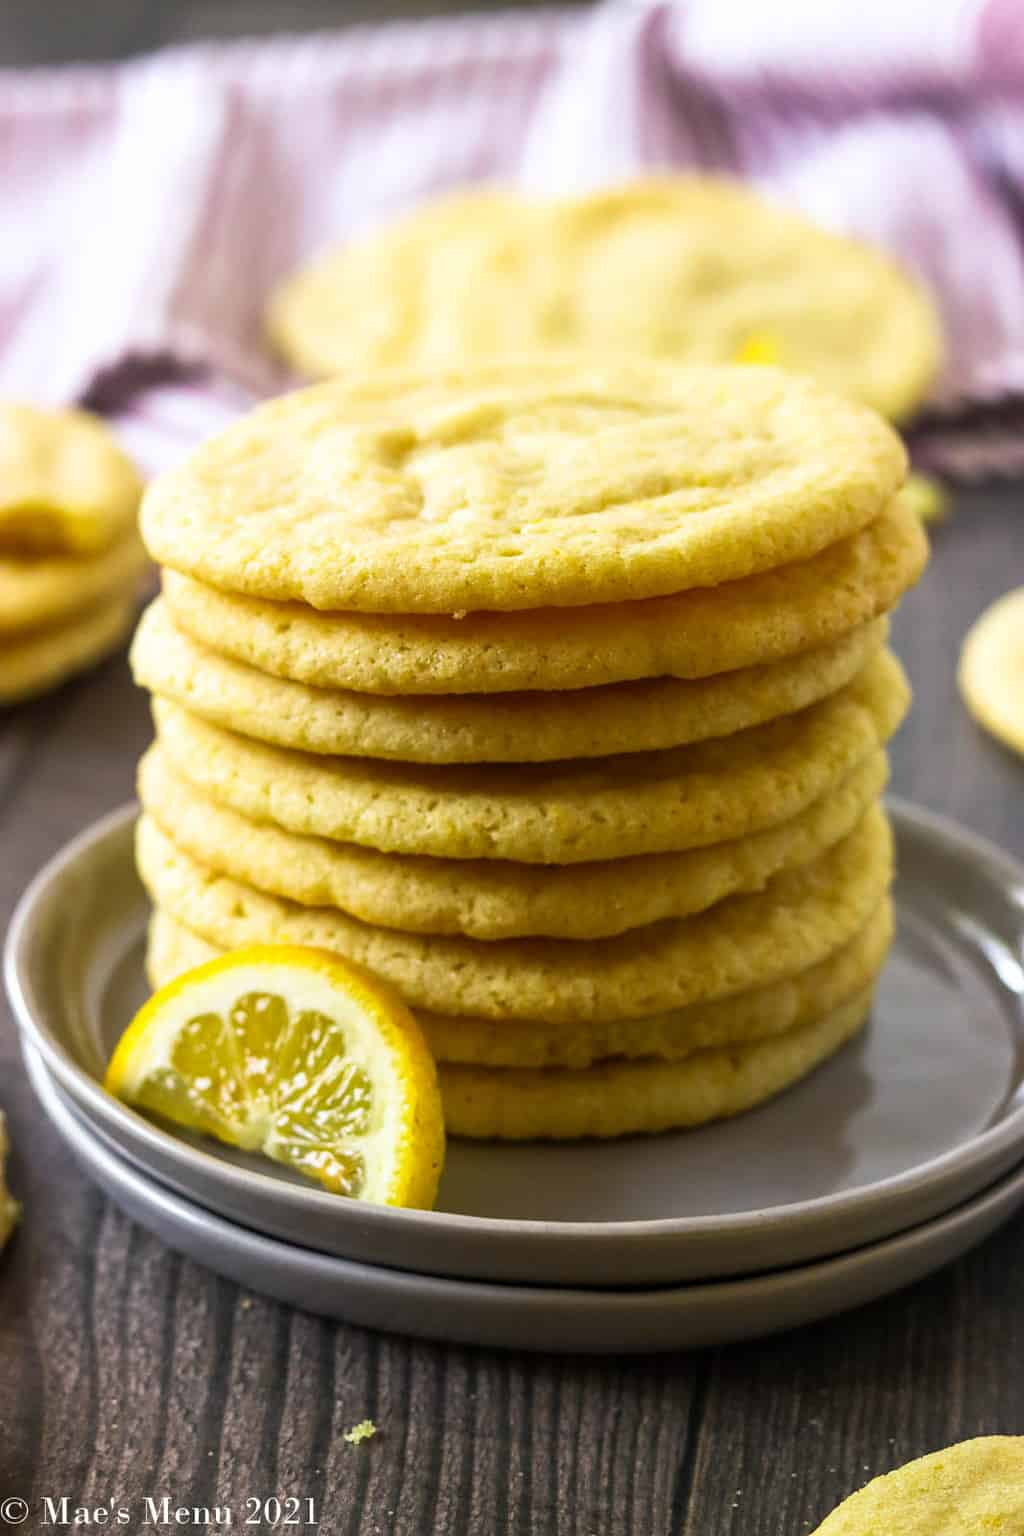 An up-close shot of a stack of lemon sugar cookies on grey plates